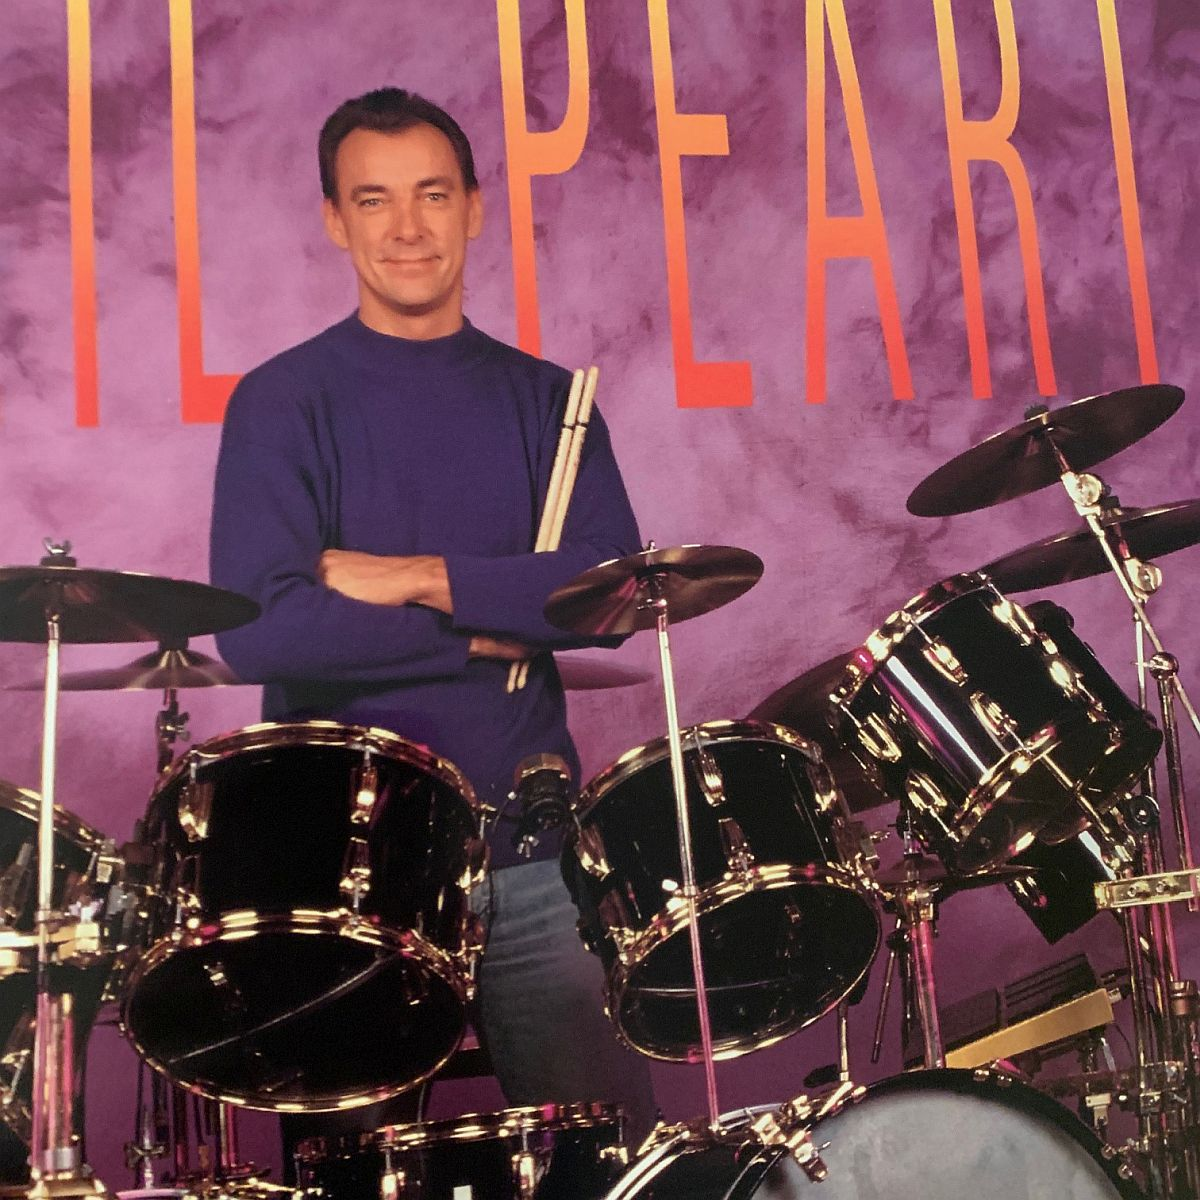 Neil Peart Ludwig Promo Poster